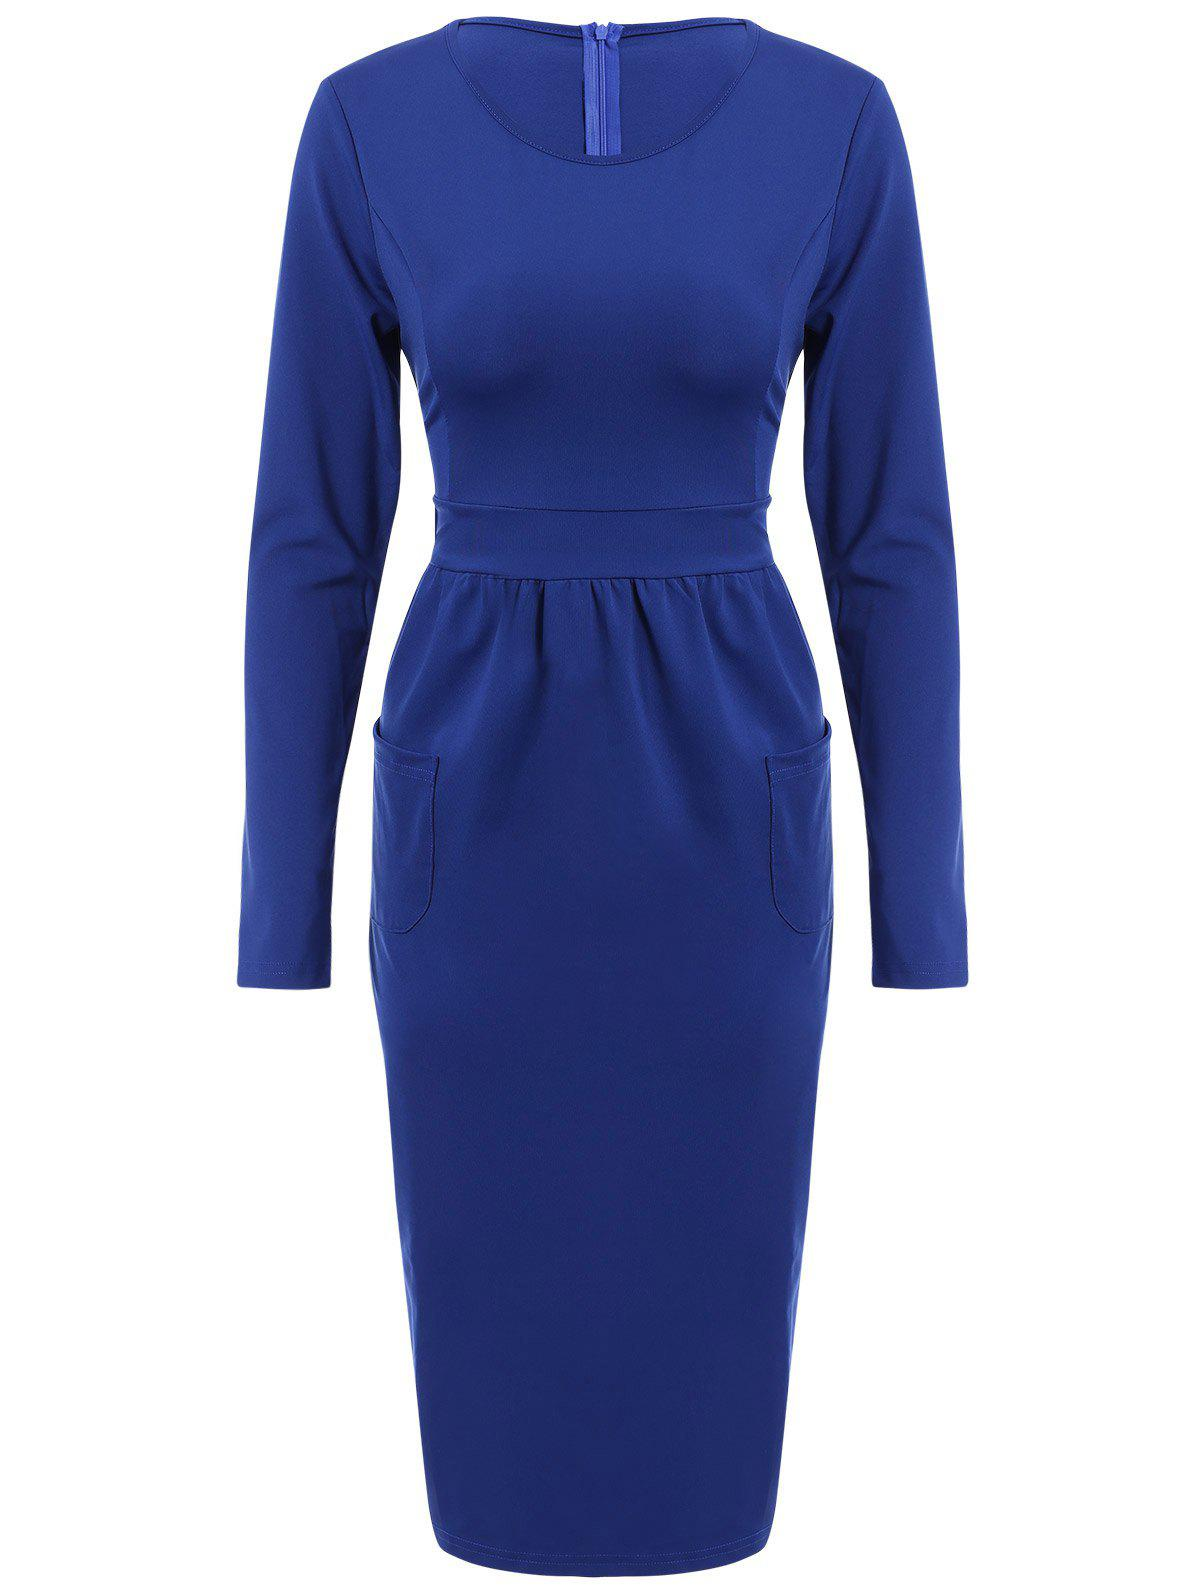 Graceful Solid Color Round Collar Long Sleeve Bodycon Midi Dress For Women